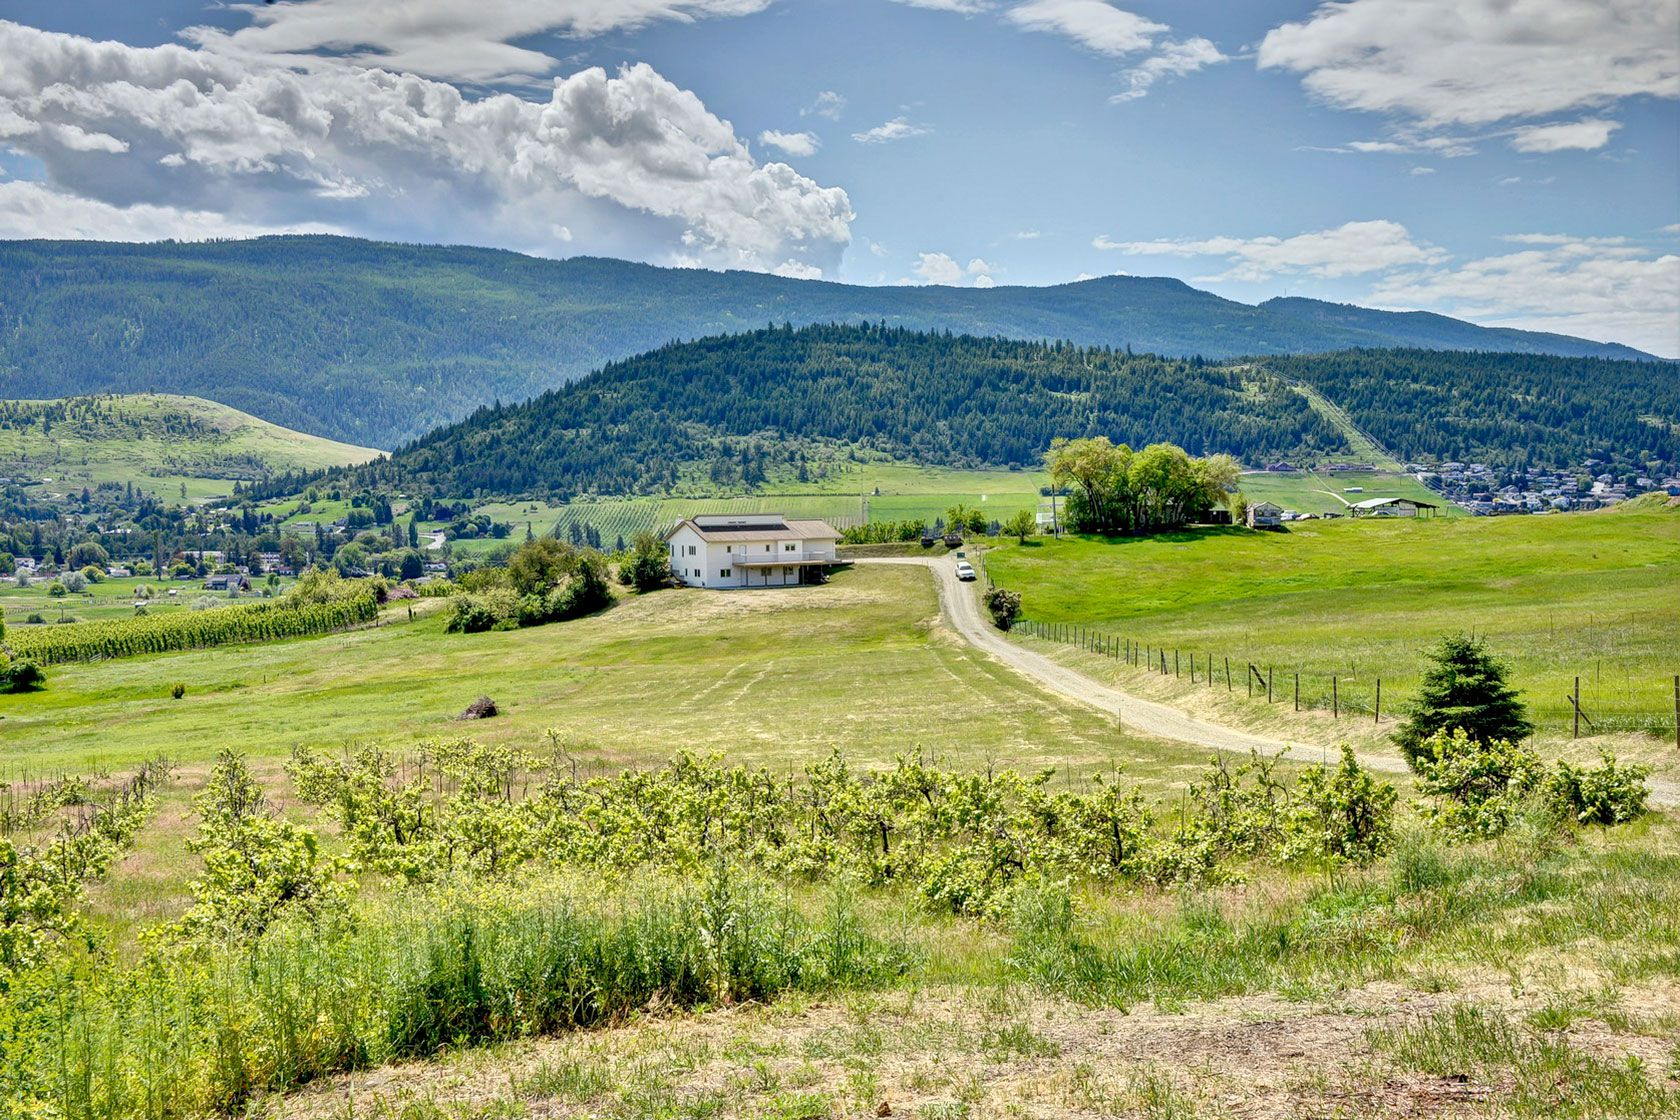 Main Photo: 10600 Middleton Drive in Coldstream: Middleton Mountain Coldstream House for sale (North Okanagan)  : MLS®# 10100086